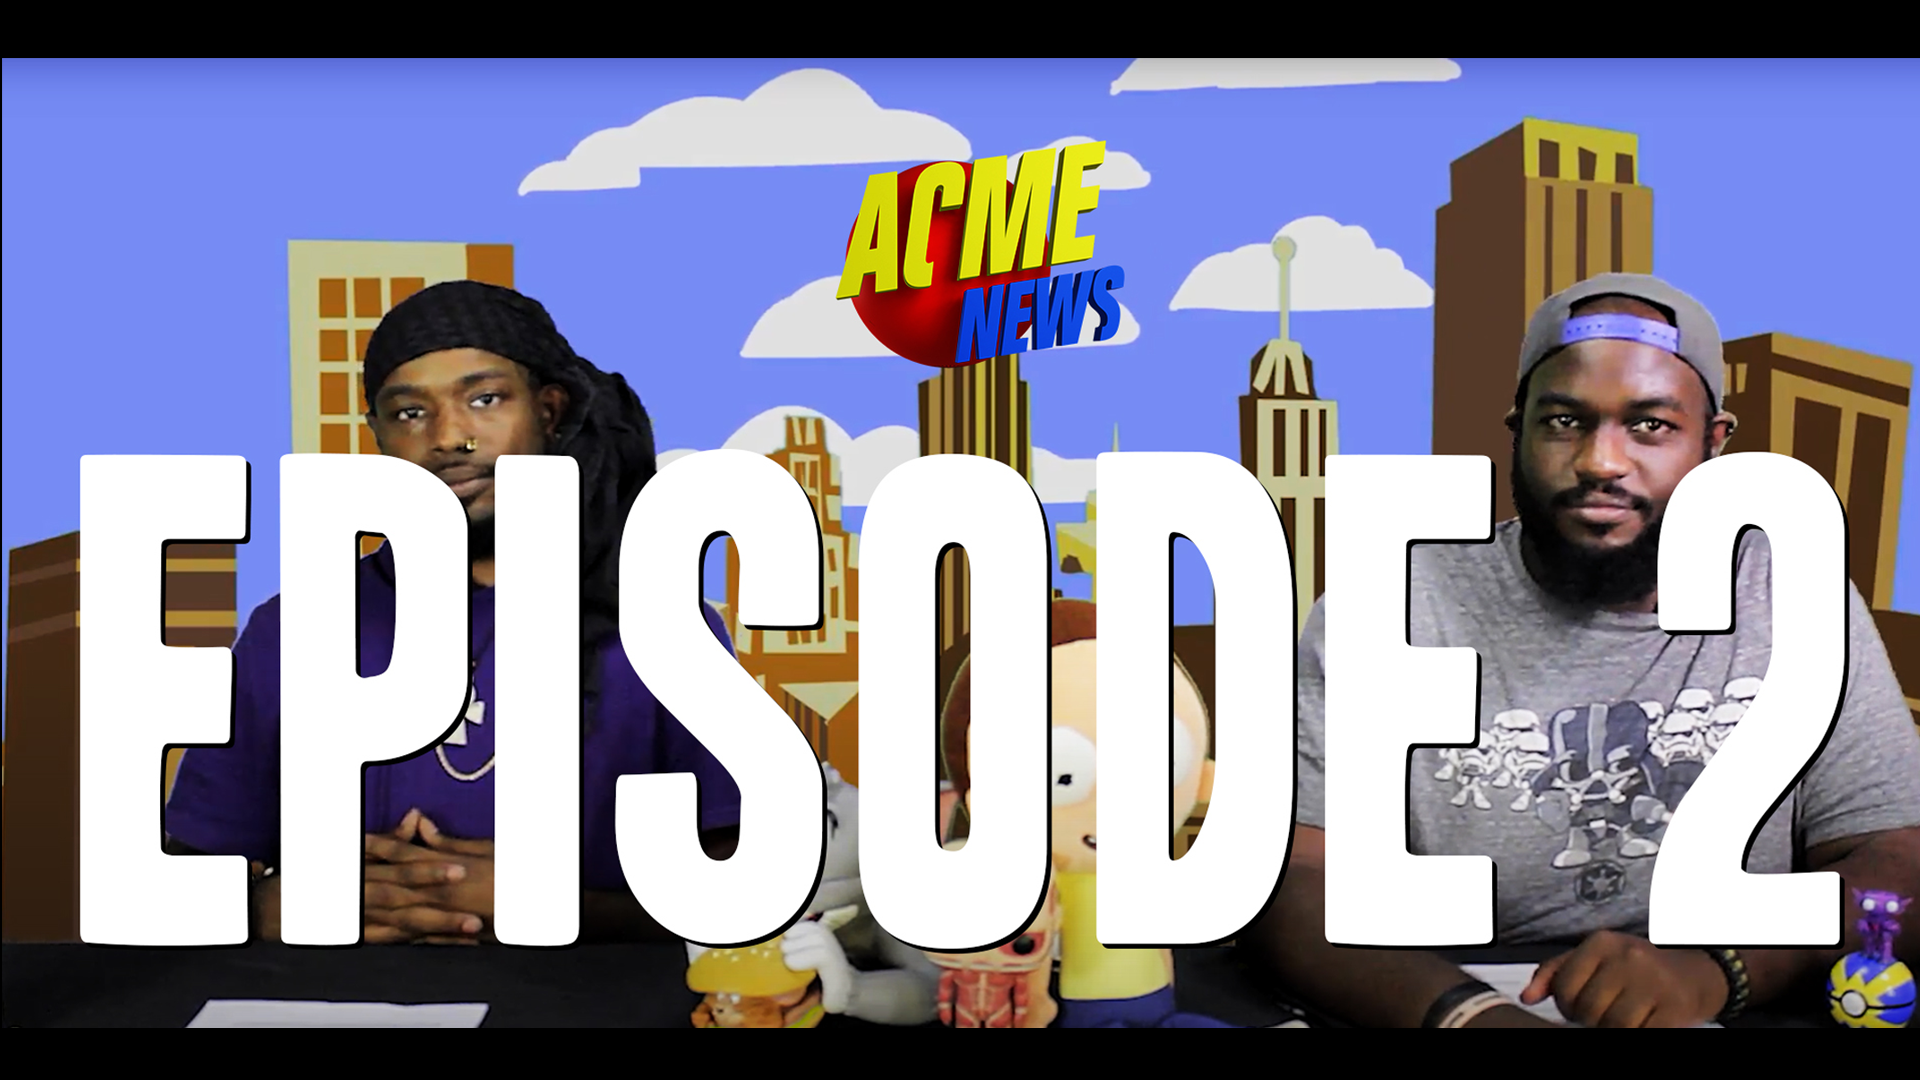 Acme News Season 1 Episode 2